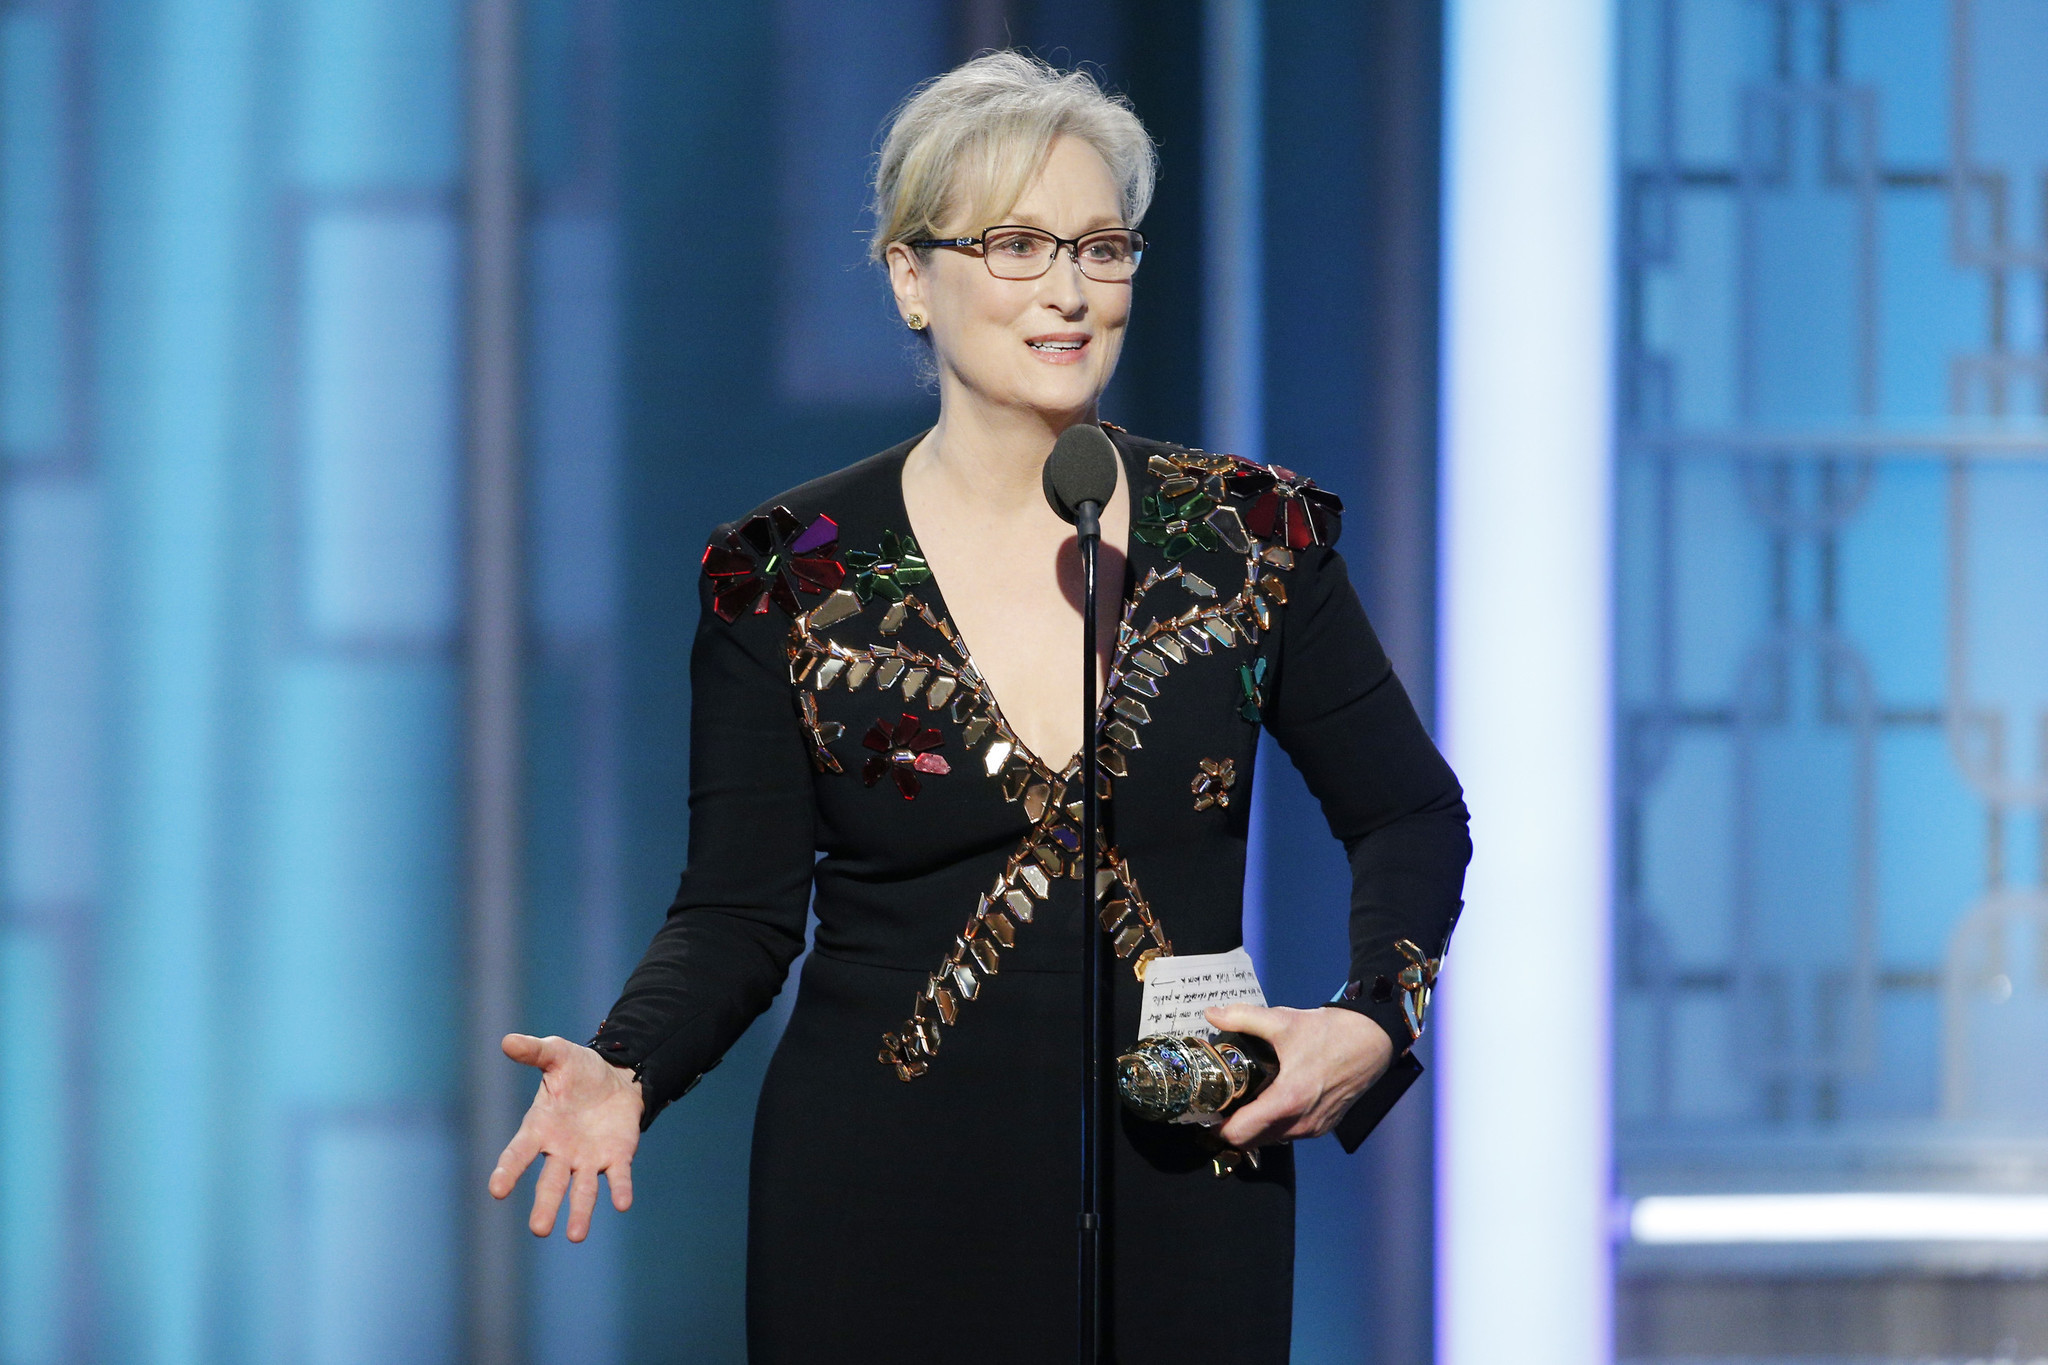 Meryl Streep accepts the Cecil B. DeMille Lifetime Achievement Award on Jan. 8 at the 74th Golden Globe Awards ceremony. (Getty Images)